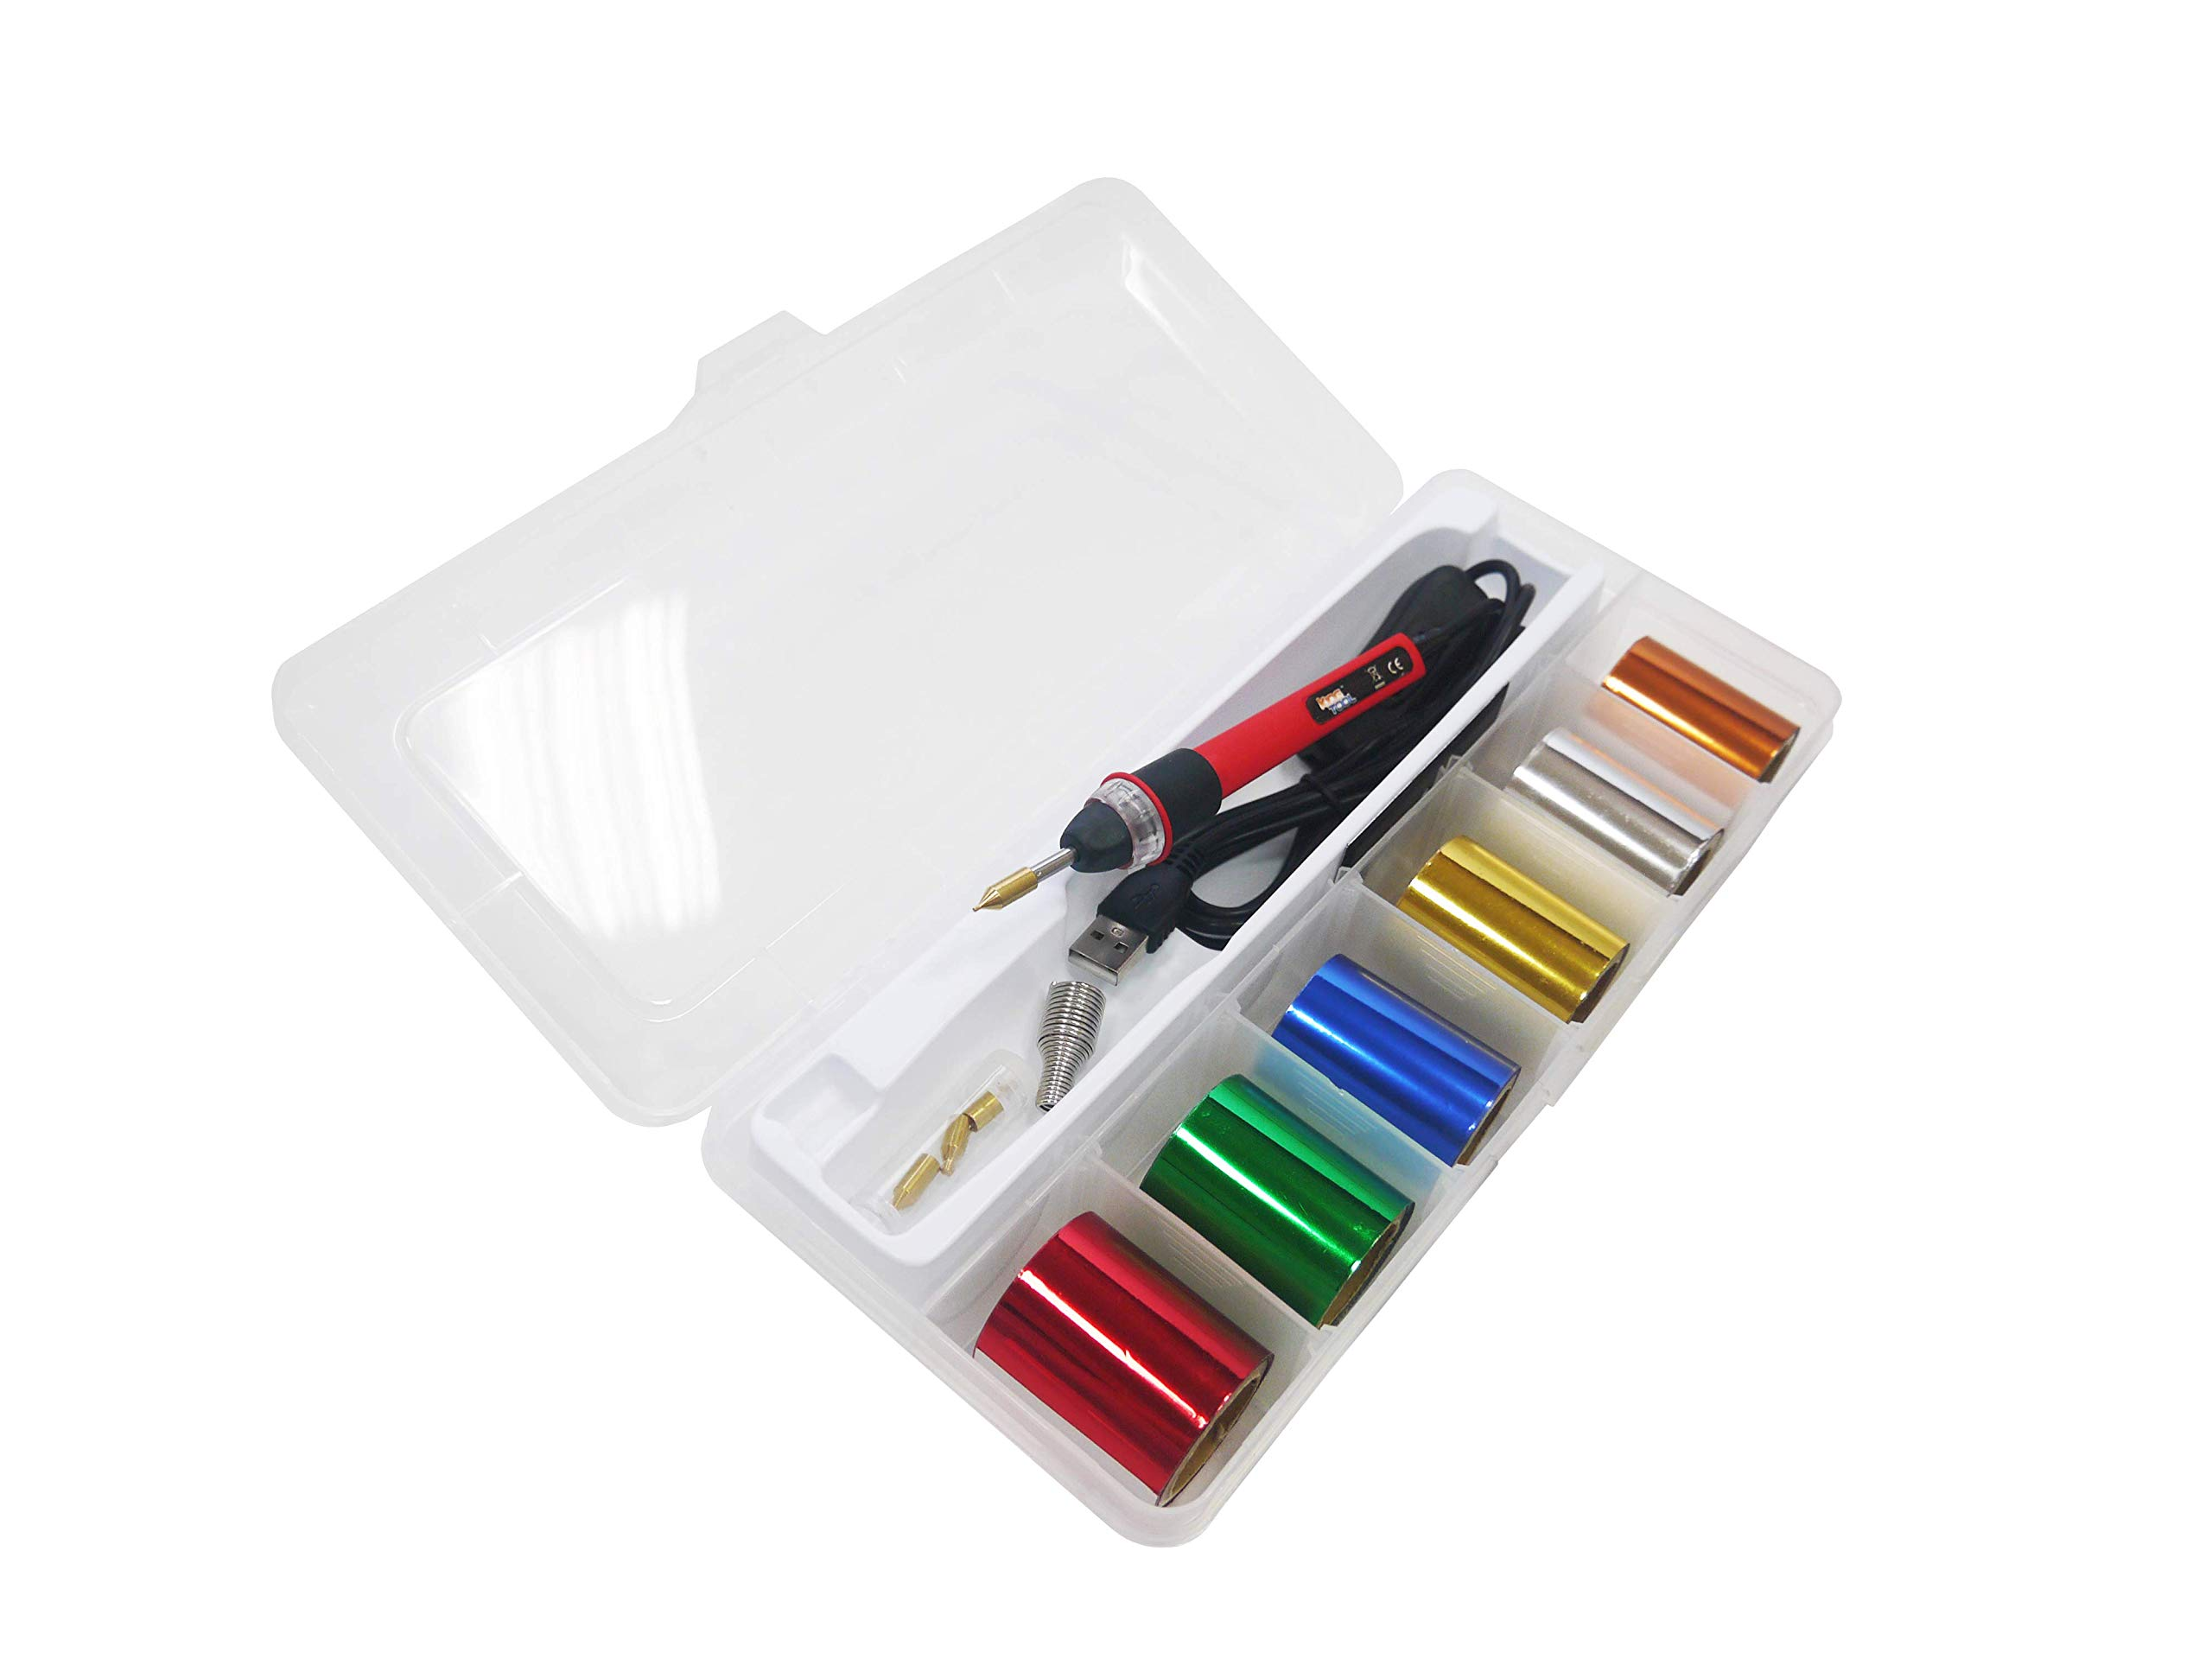 KINGTOOL Hot Foil Stamping Tool Hot Quill Pen Embossing Pen Hot Foil Pen, USB Powered (with 4 Nibs) (Red)